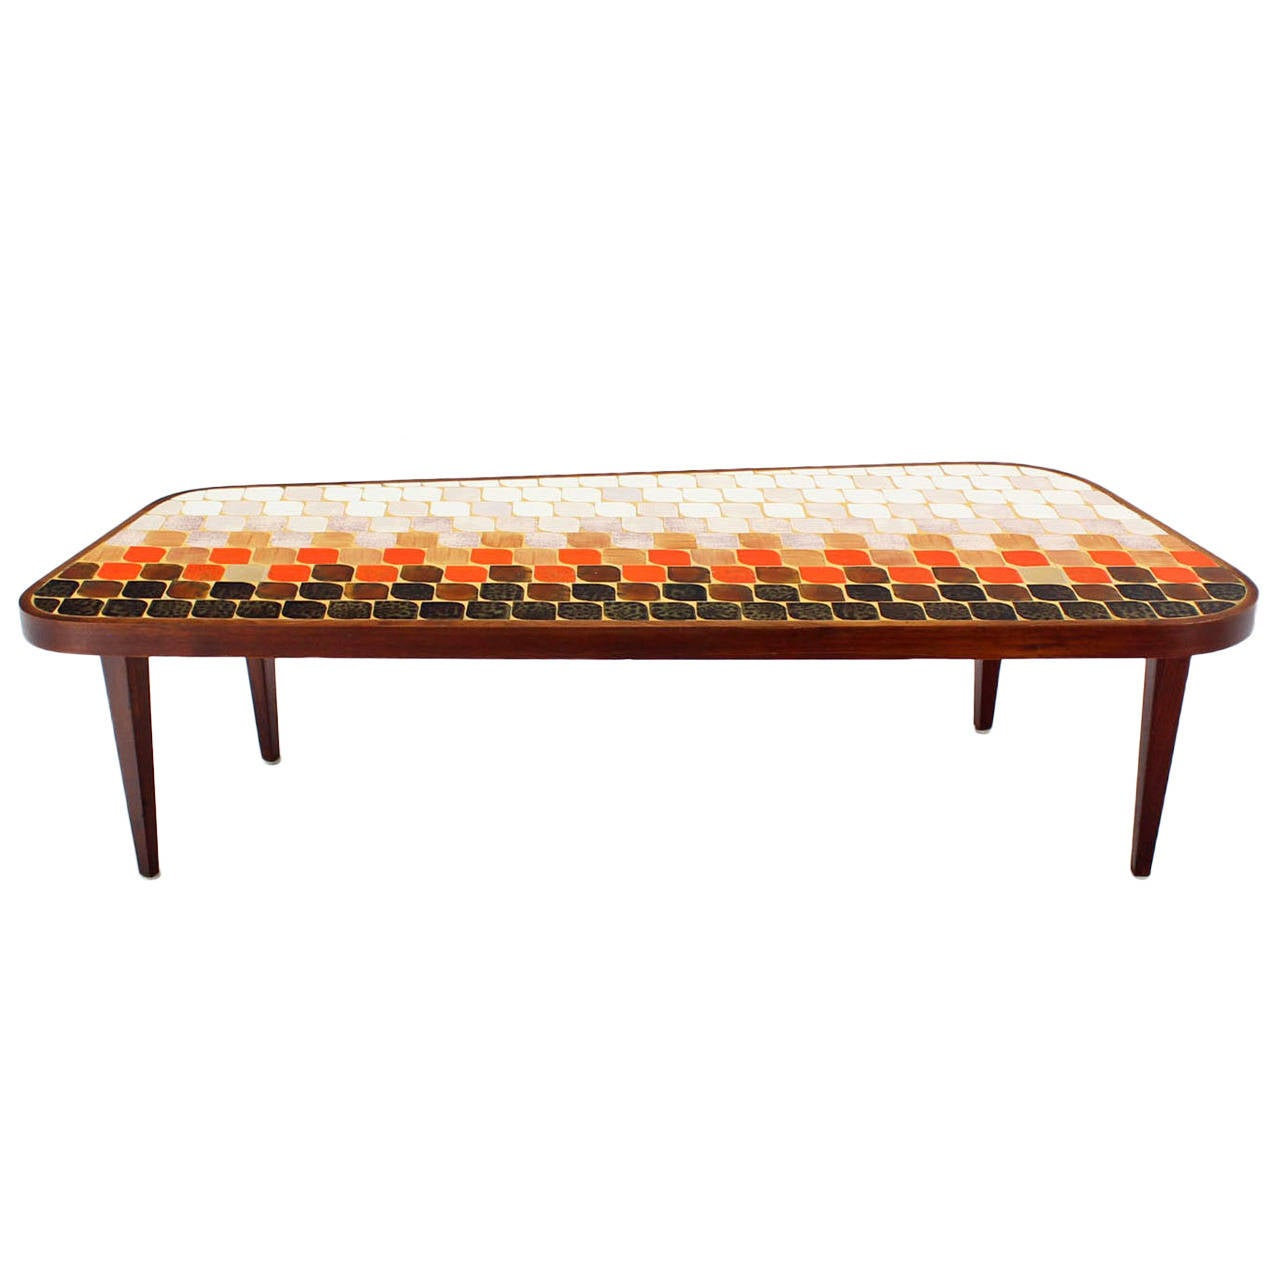 Mid Century Modern Organic Shape Coffee Table With Tile Mosaic Top At 1stdibs